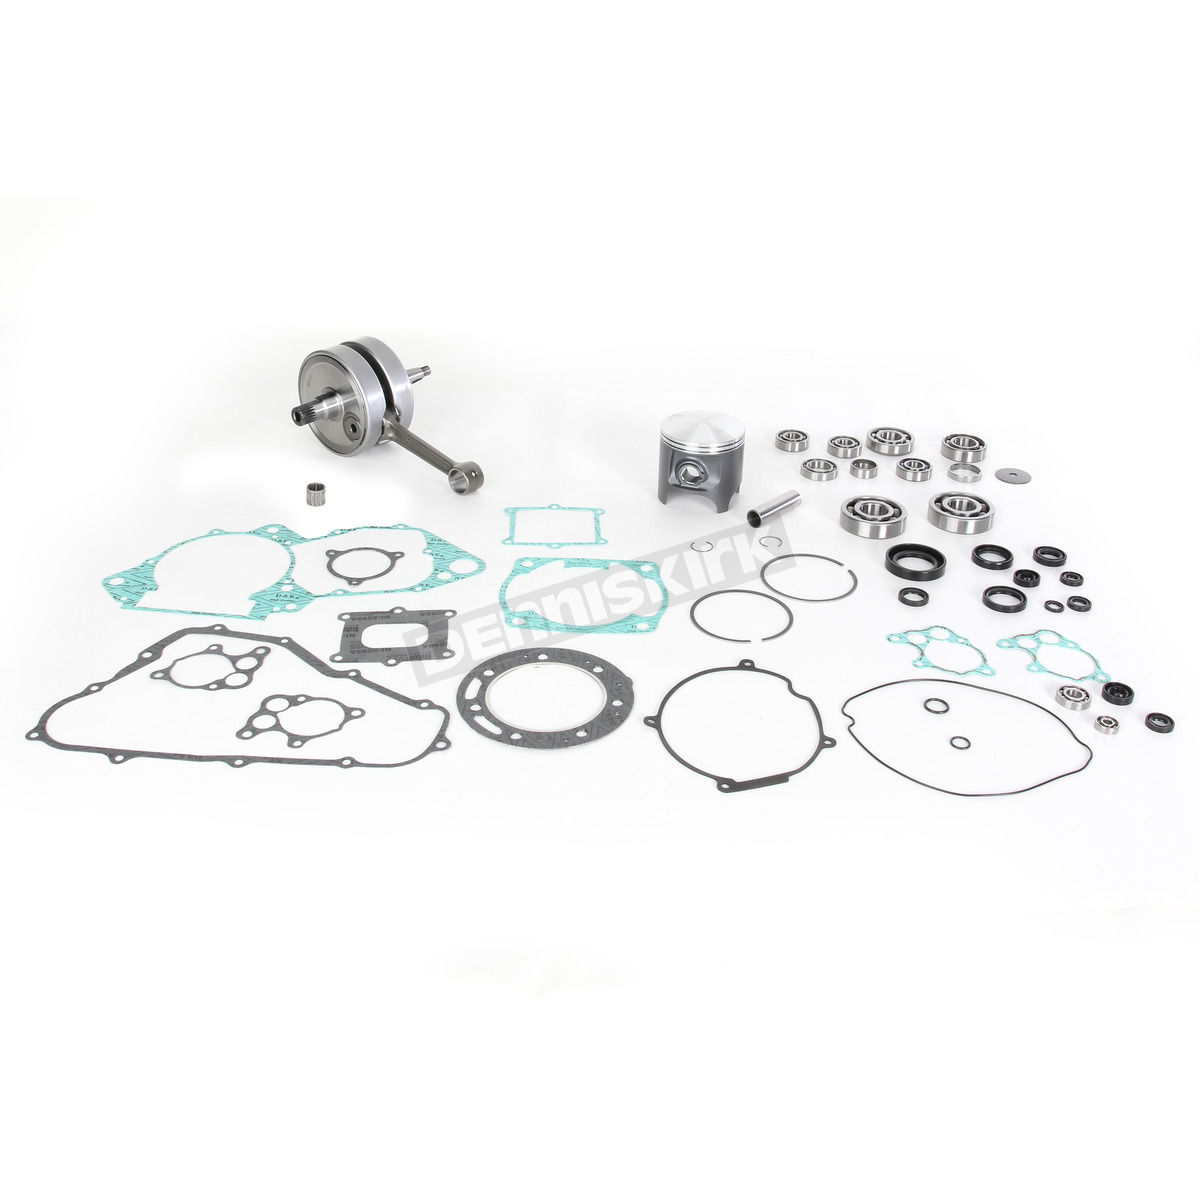 Wrench Rabbit Complete Engine Rebuild Kit 89mm Bore